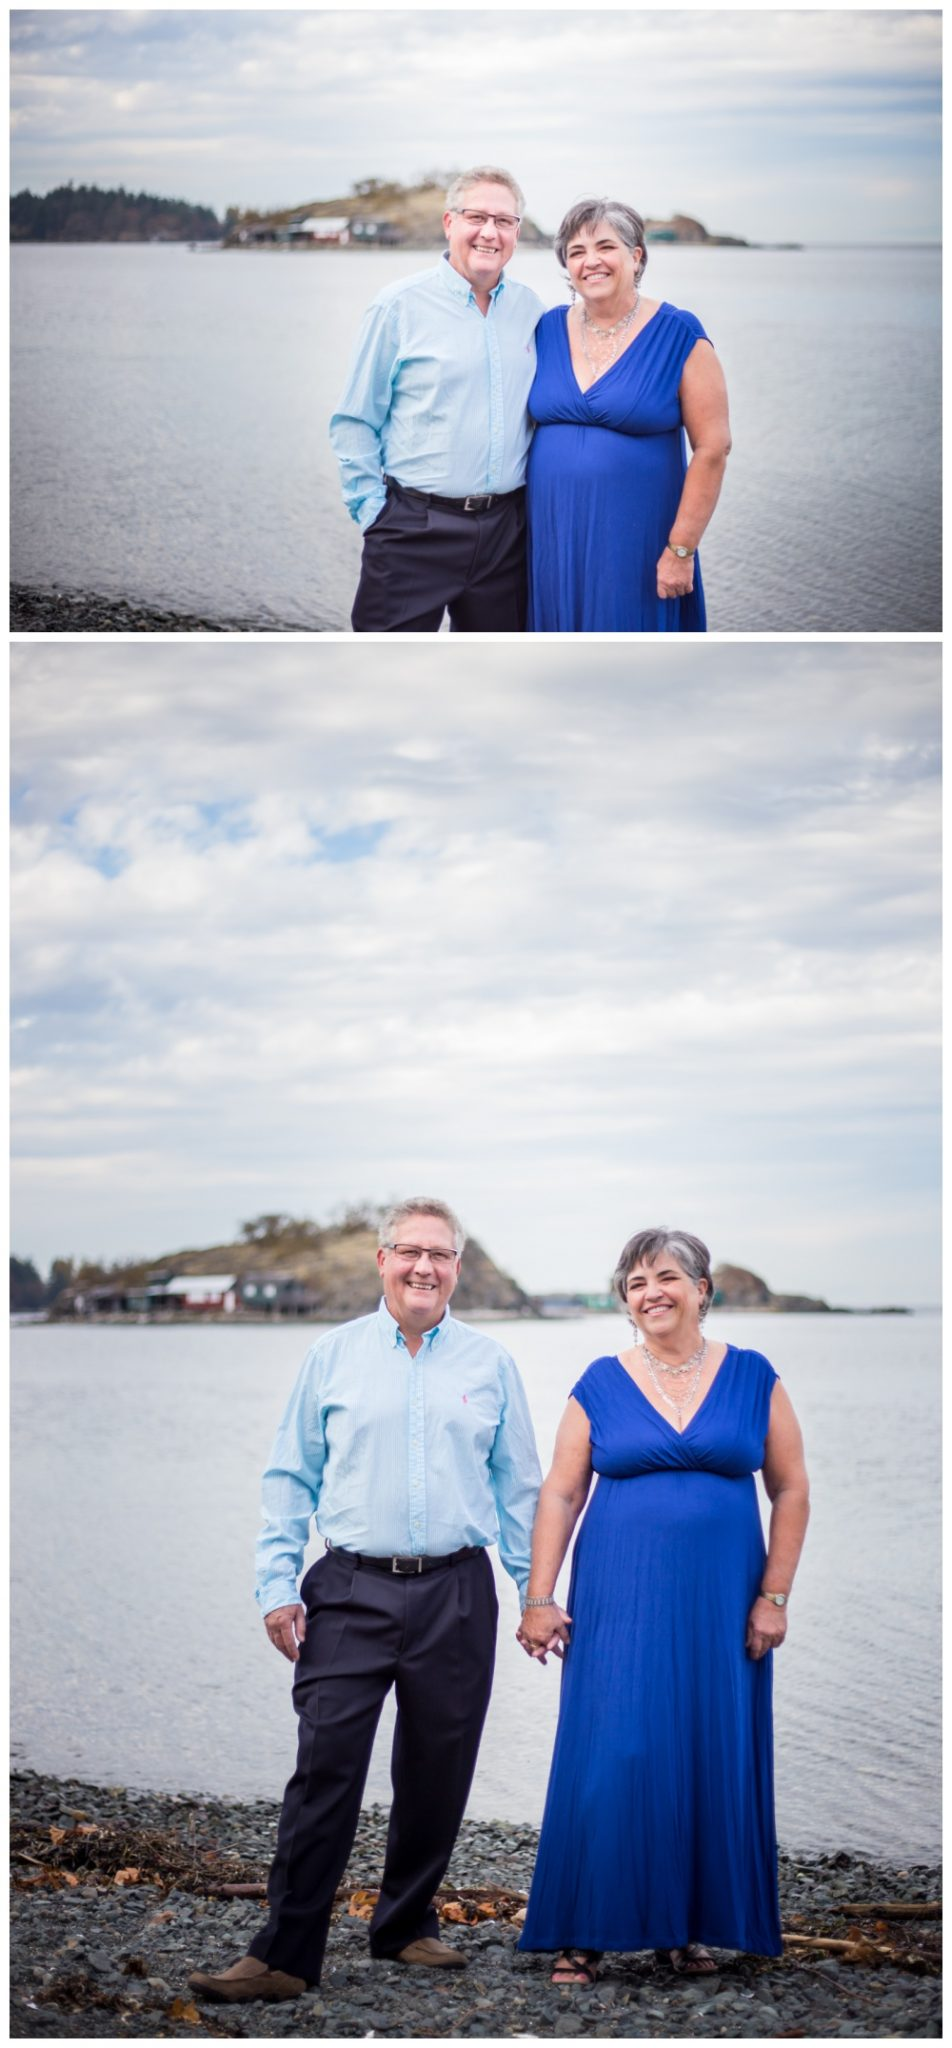 Couples portraits on the beach by Nanaimo Photographer